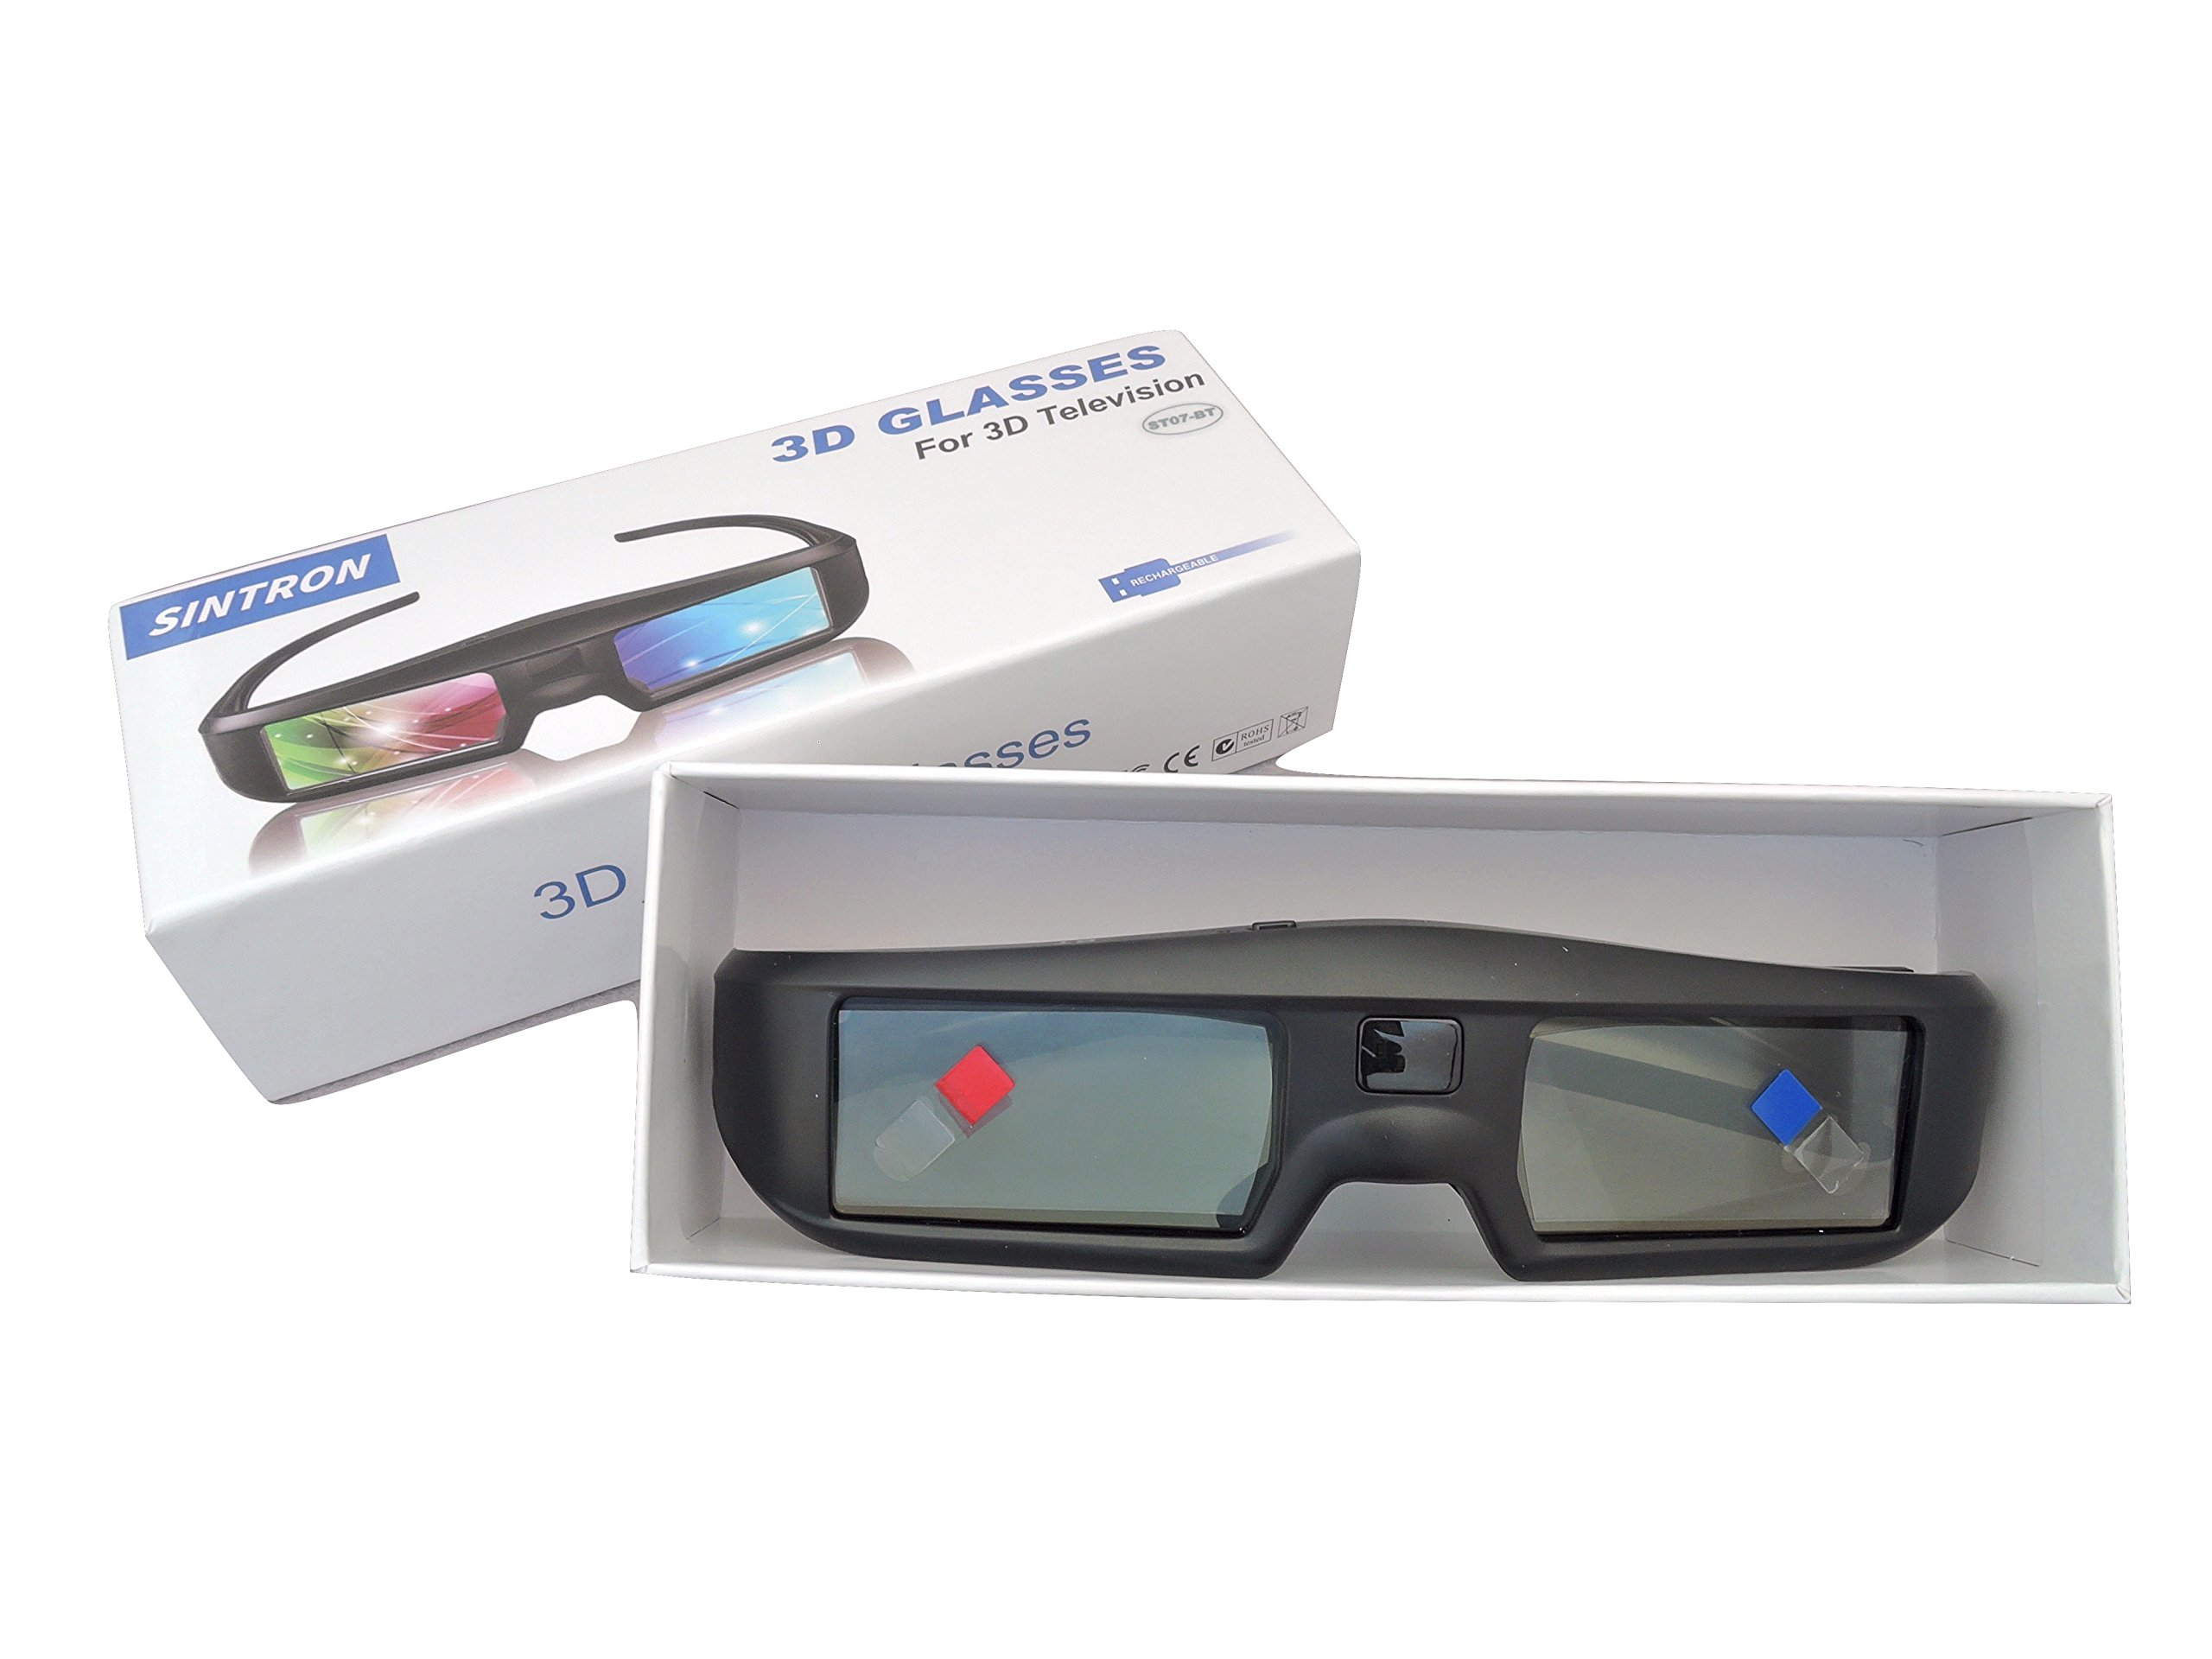 2X 3D Active Shutter Glasses Rechargeable - Sintron ST07-BT for RF 3D TV, 3D Glasses for Sony, Panasonic, Samsung 3D TV, Epson 3D projector, Compatible with TDG-BT500A TDG-BT400A TY-ER3D5MA TY-ER3D4MA by Sintron (Image #7)